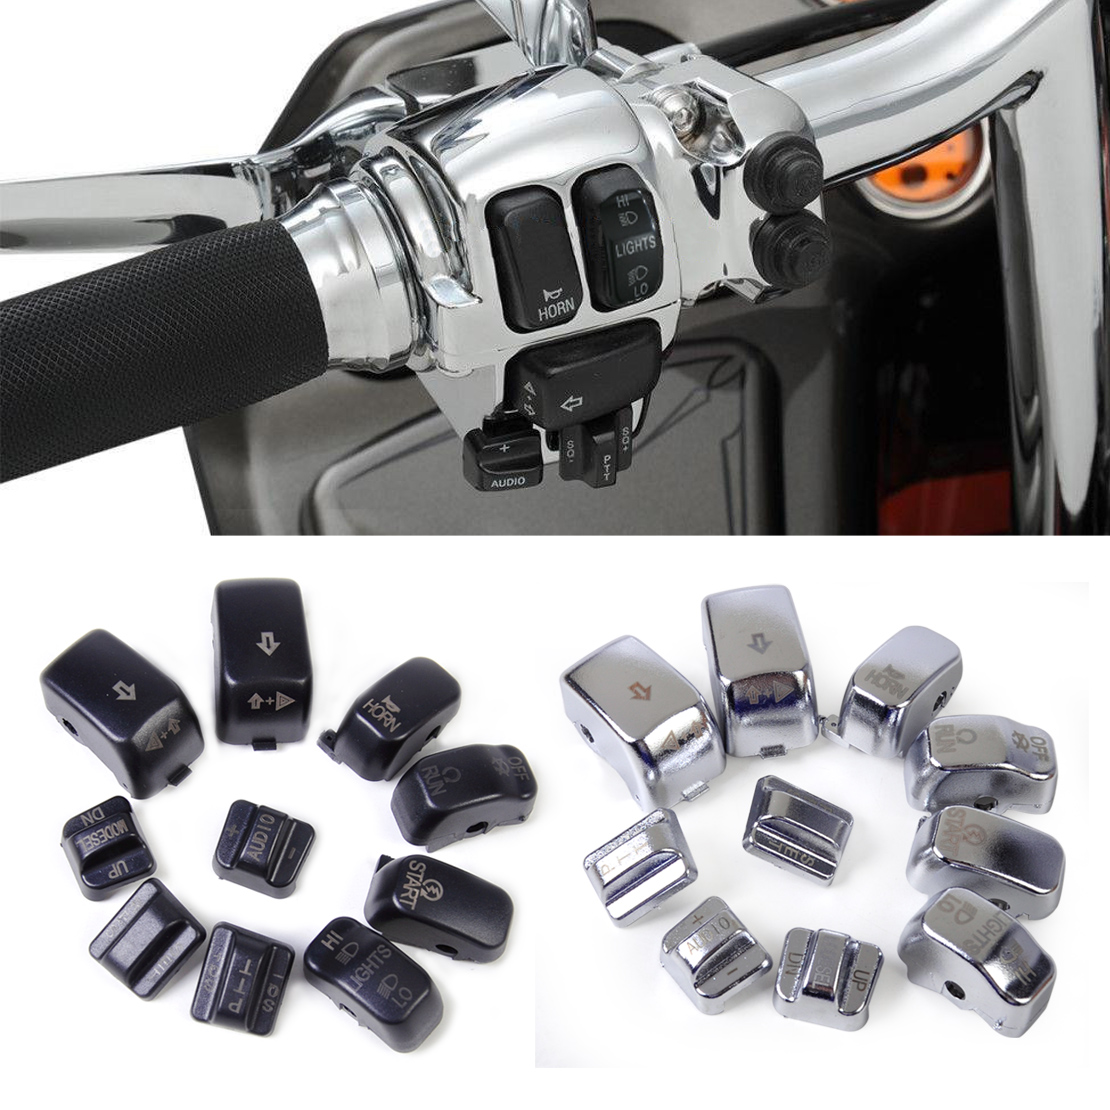 Frames & Fittings Covers & Ornamental Mouldings Diplomatic Beler 10pcs Replacement Housing Switch Cap Button Cover Kit For Harley Cross Bones Softail Dyna Road King Electra Glide Curing Cough And Facilitating Expectoration And Relieving Hoarseness